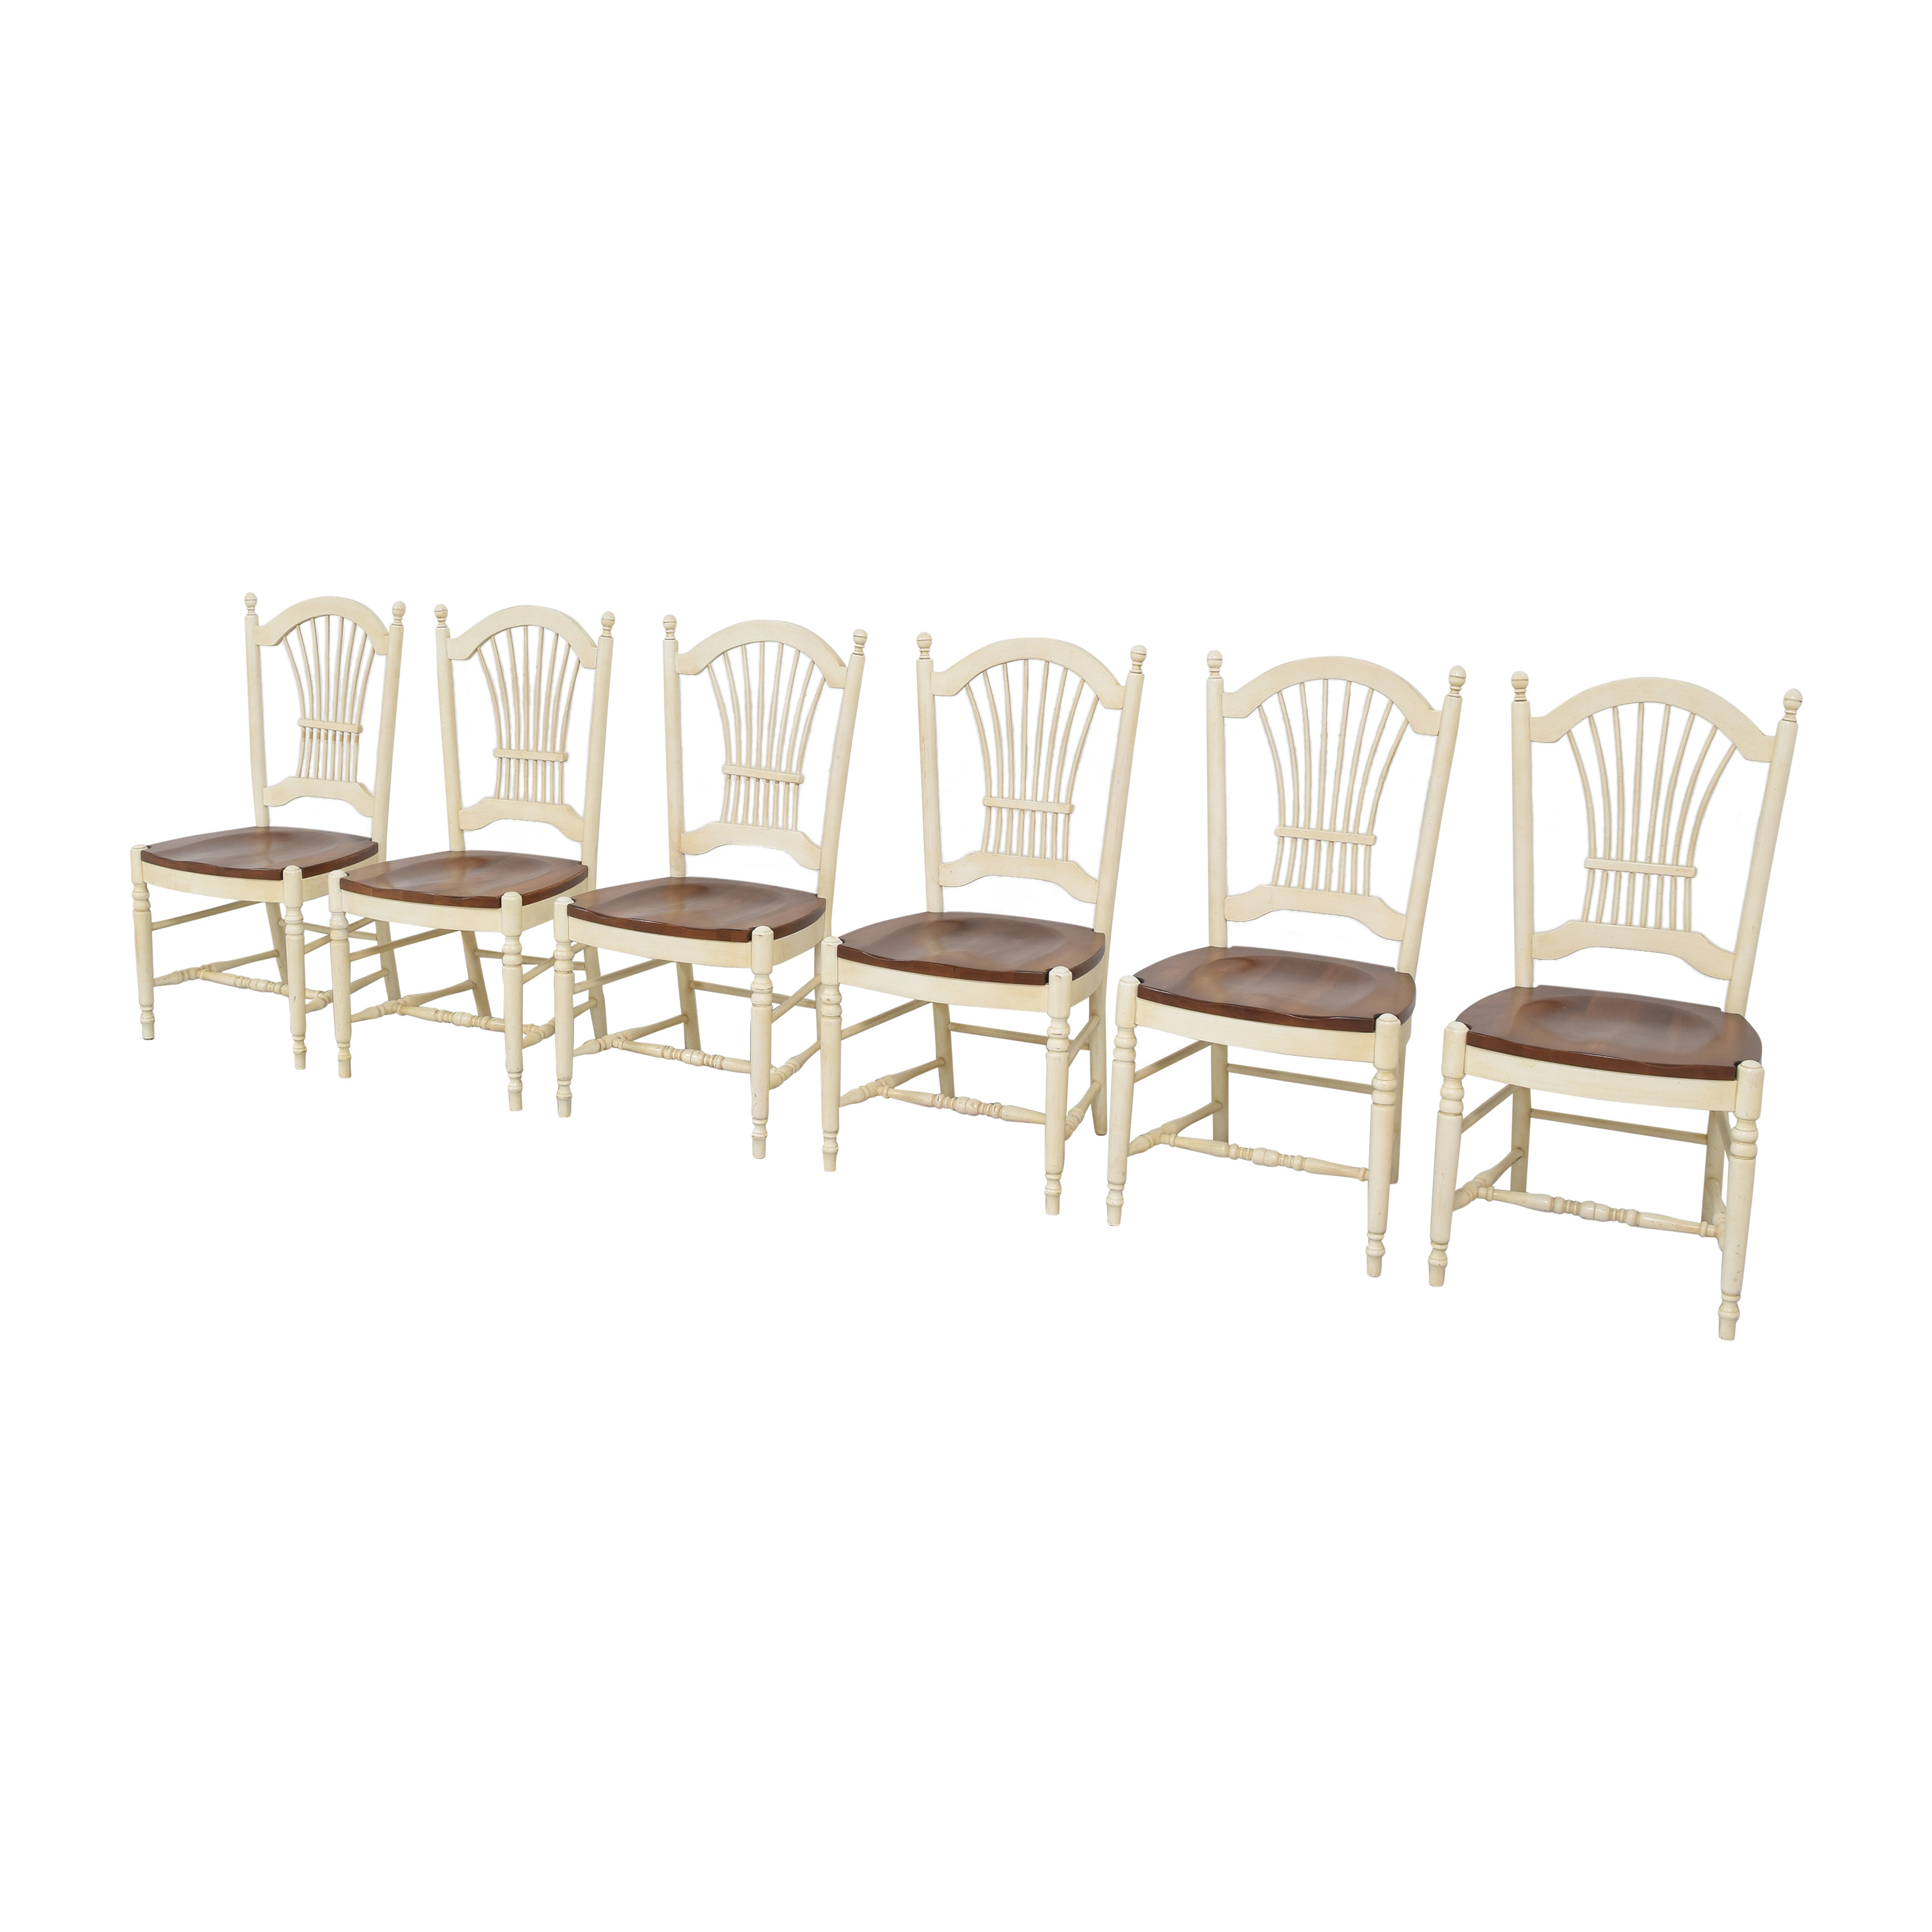 Ethan Allen Ethan Allen Country French Dining Chairs coupon